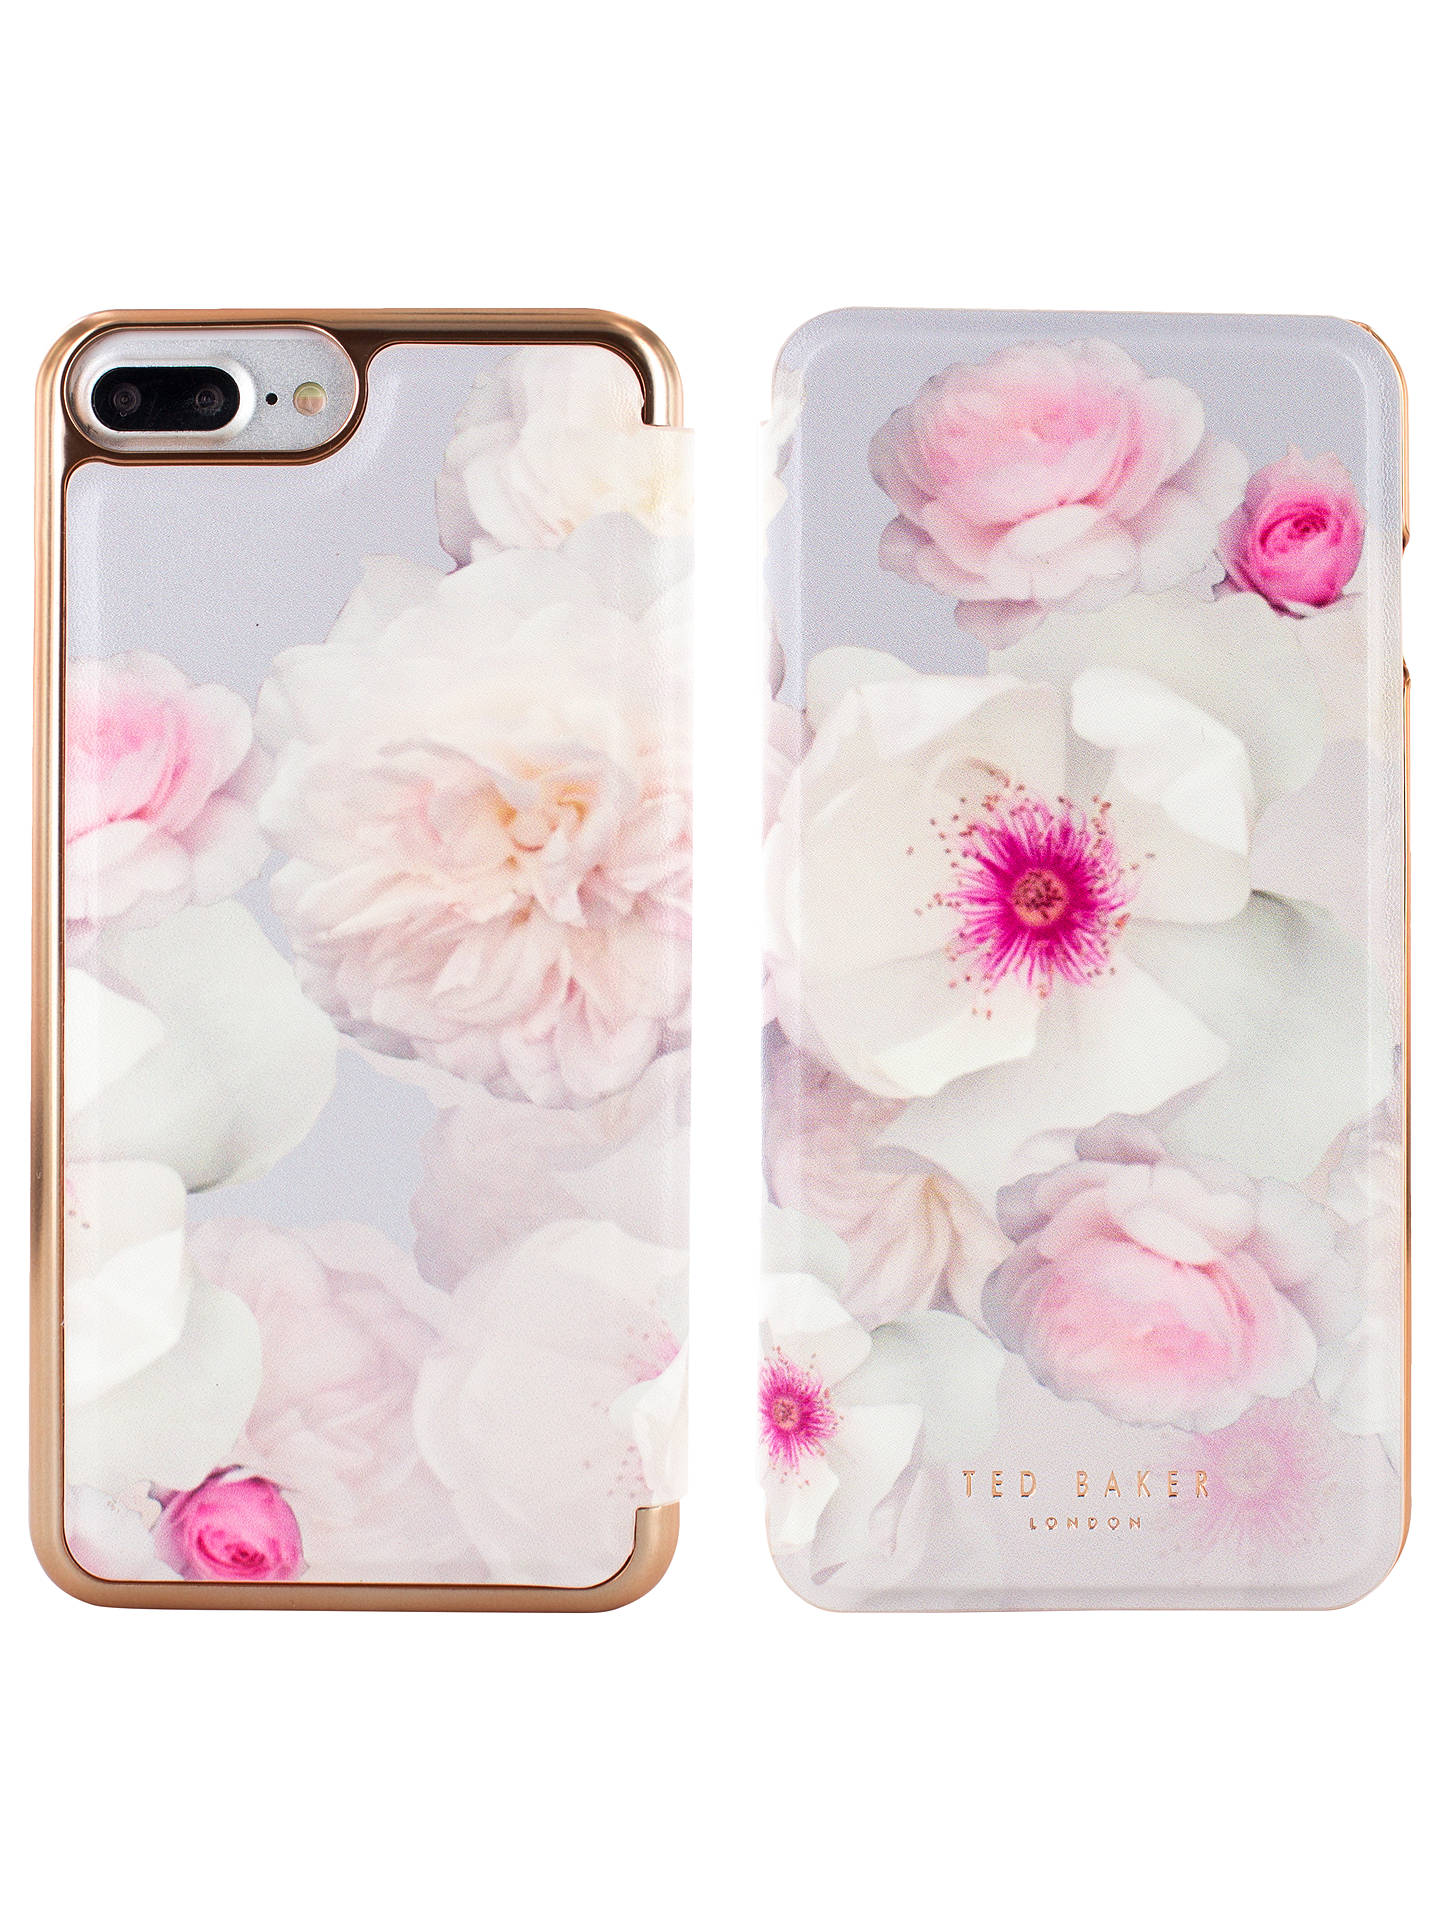 new concept 2fac5 fdfd2 Ted Baker Eleasse Case for iPhone 6/7 and 8 Plus